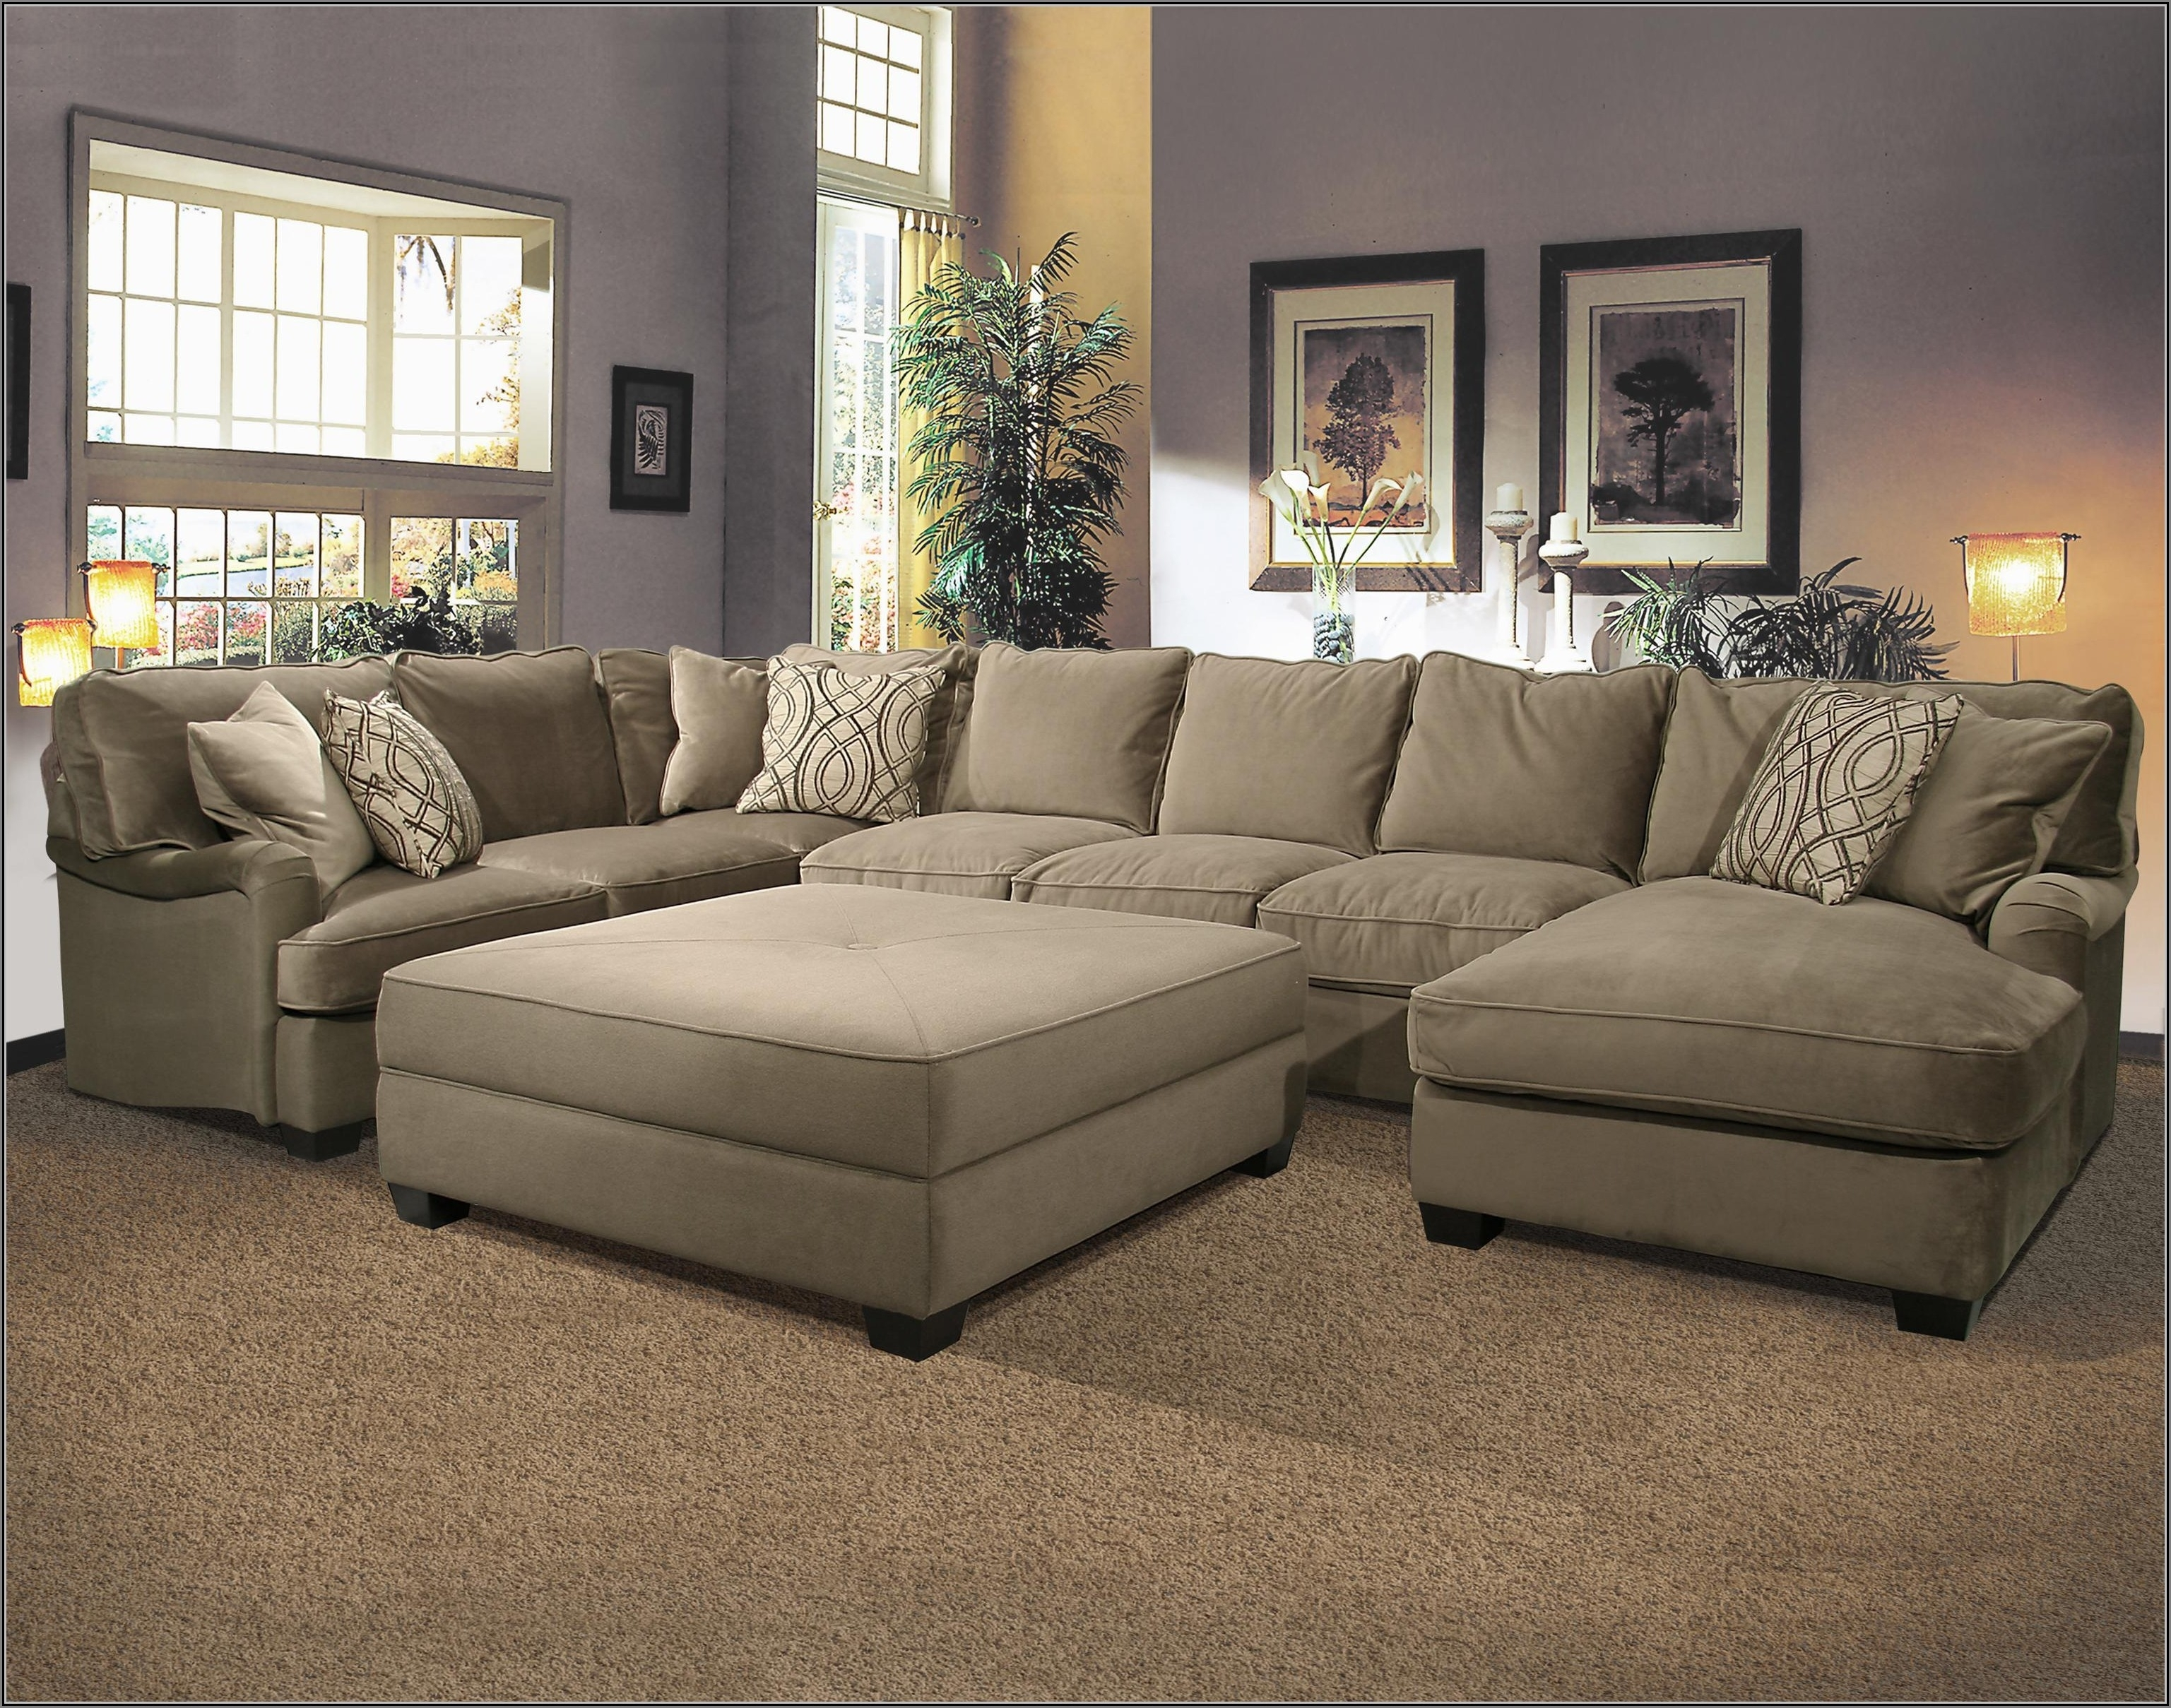 Sectional Sofa With Large Ottoman Hotelsbacau Com Intended For In Sectionals With Ottoman (View 13 of 15)